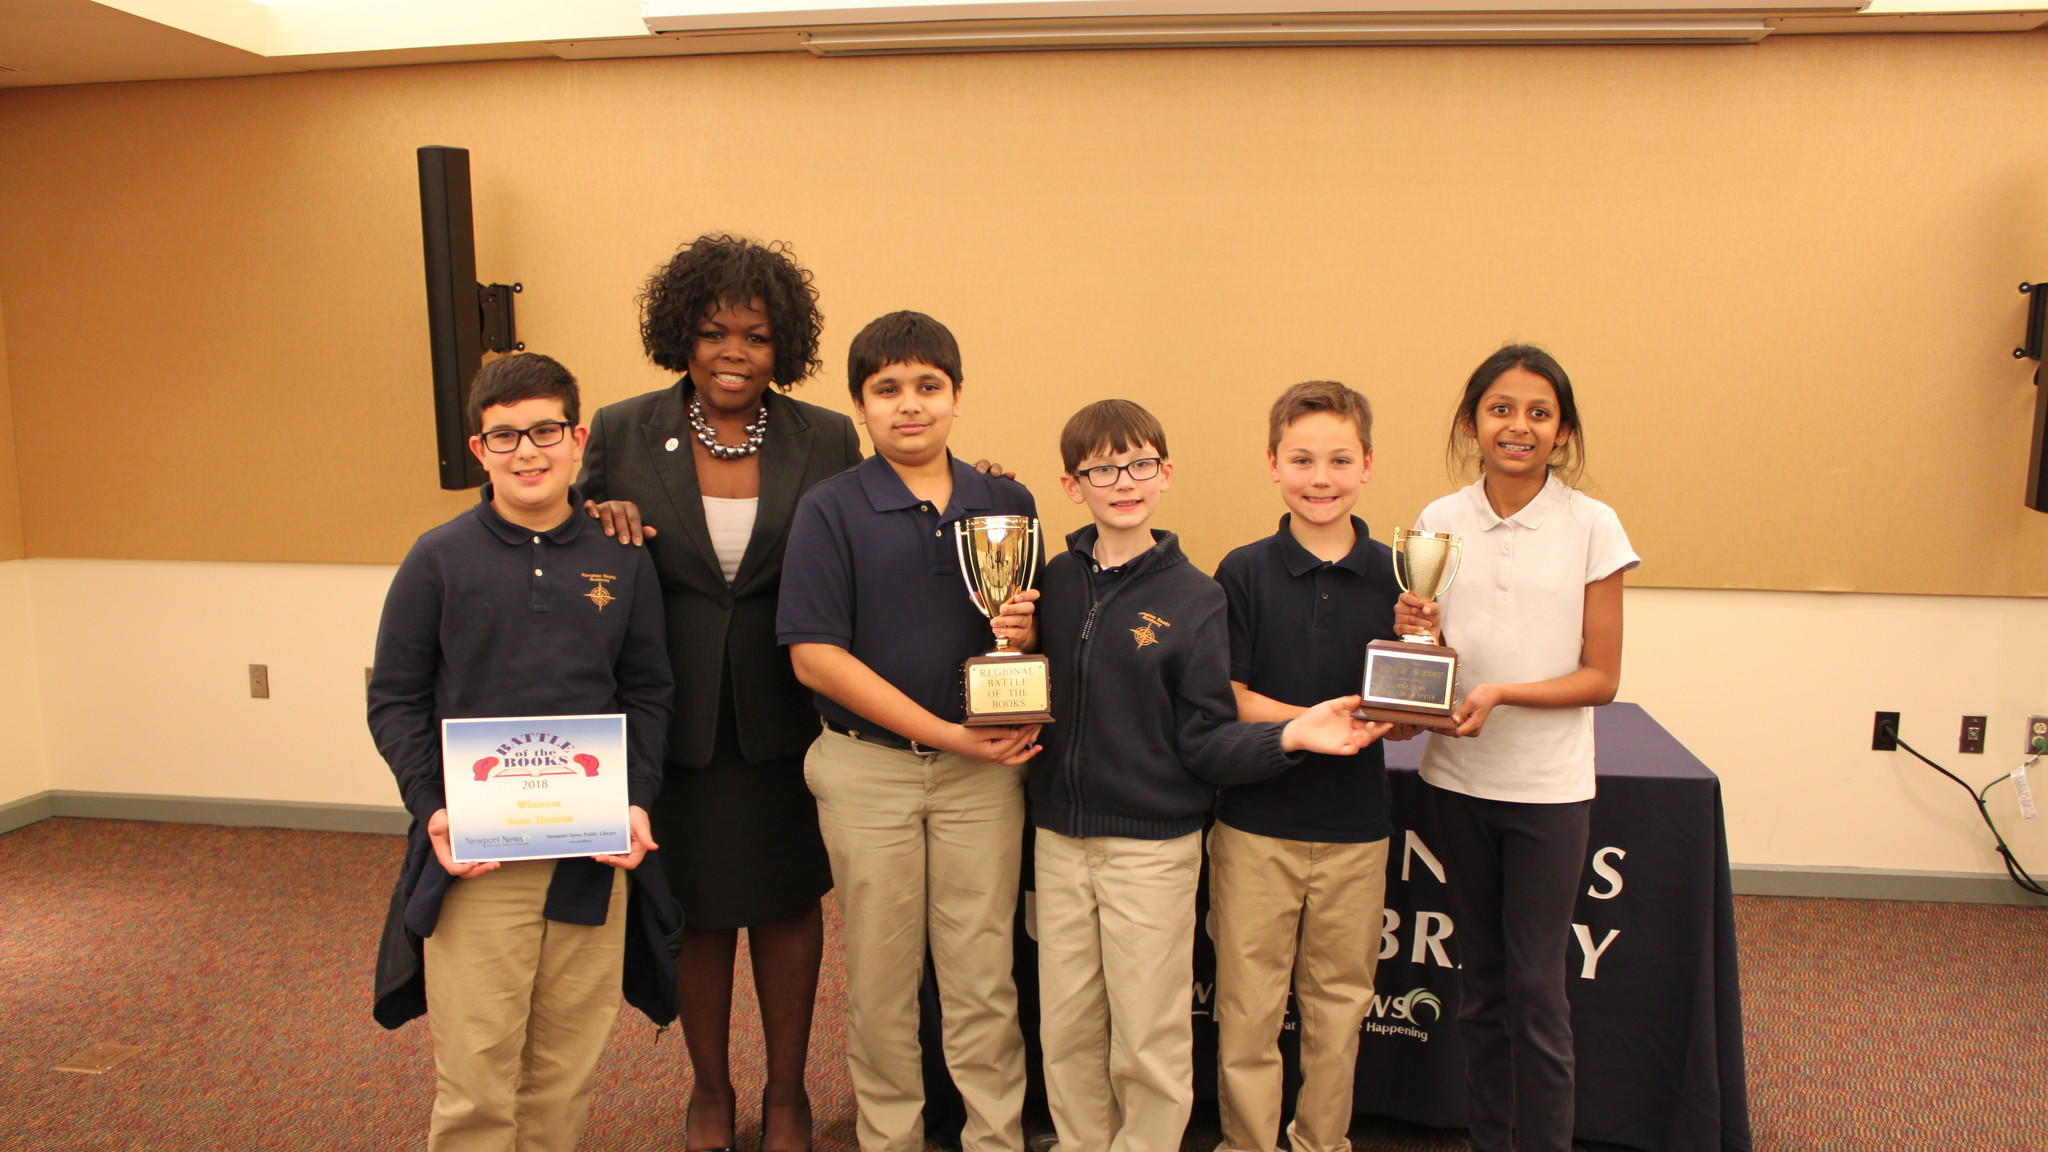 HRA Wins Regional Battle of the Books Competition